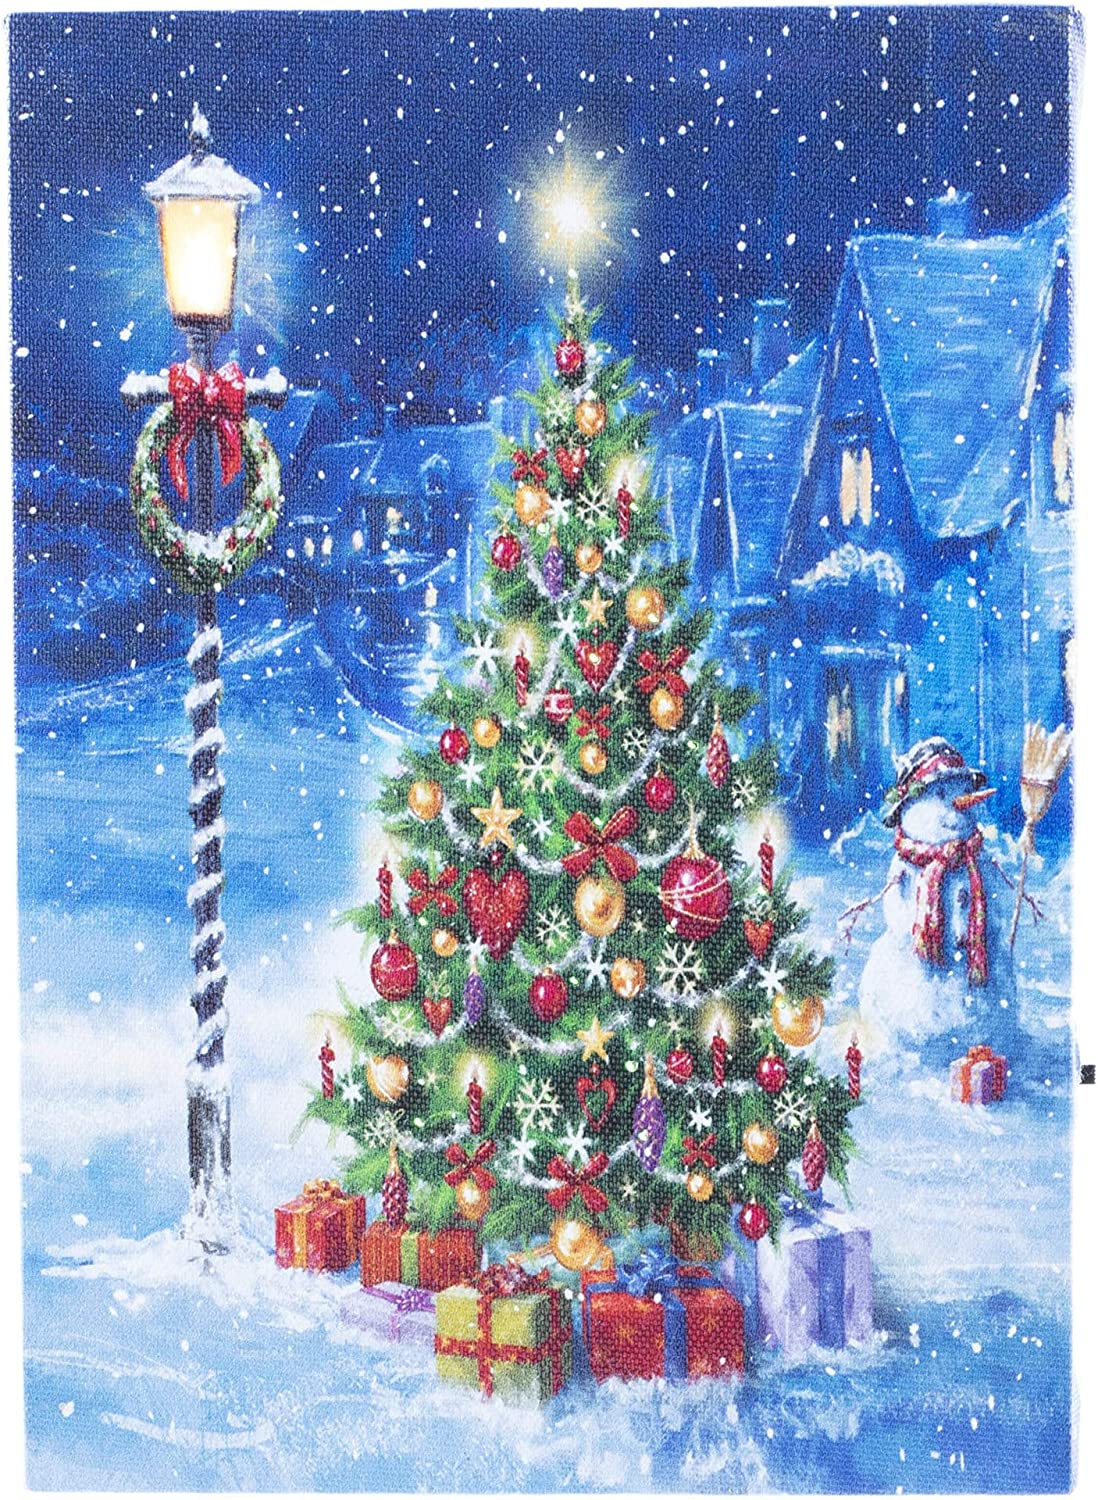 Oak Street Christmas Winter Scenes Led Art 8 X6 Tabletop Canvas Light Up Picture 6 Hour Timer 8 X6 Perfect Christmas Tree Osw197406 Posters Prints Amazon Com